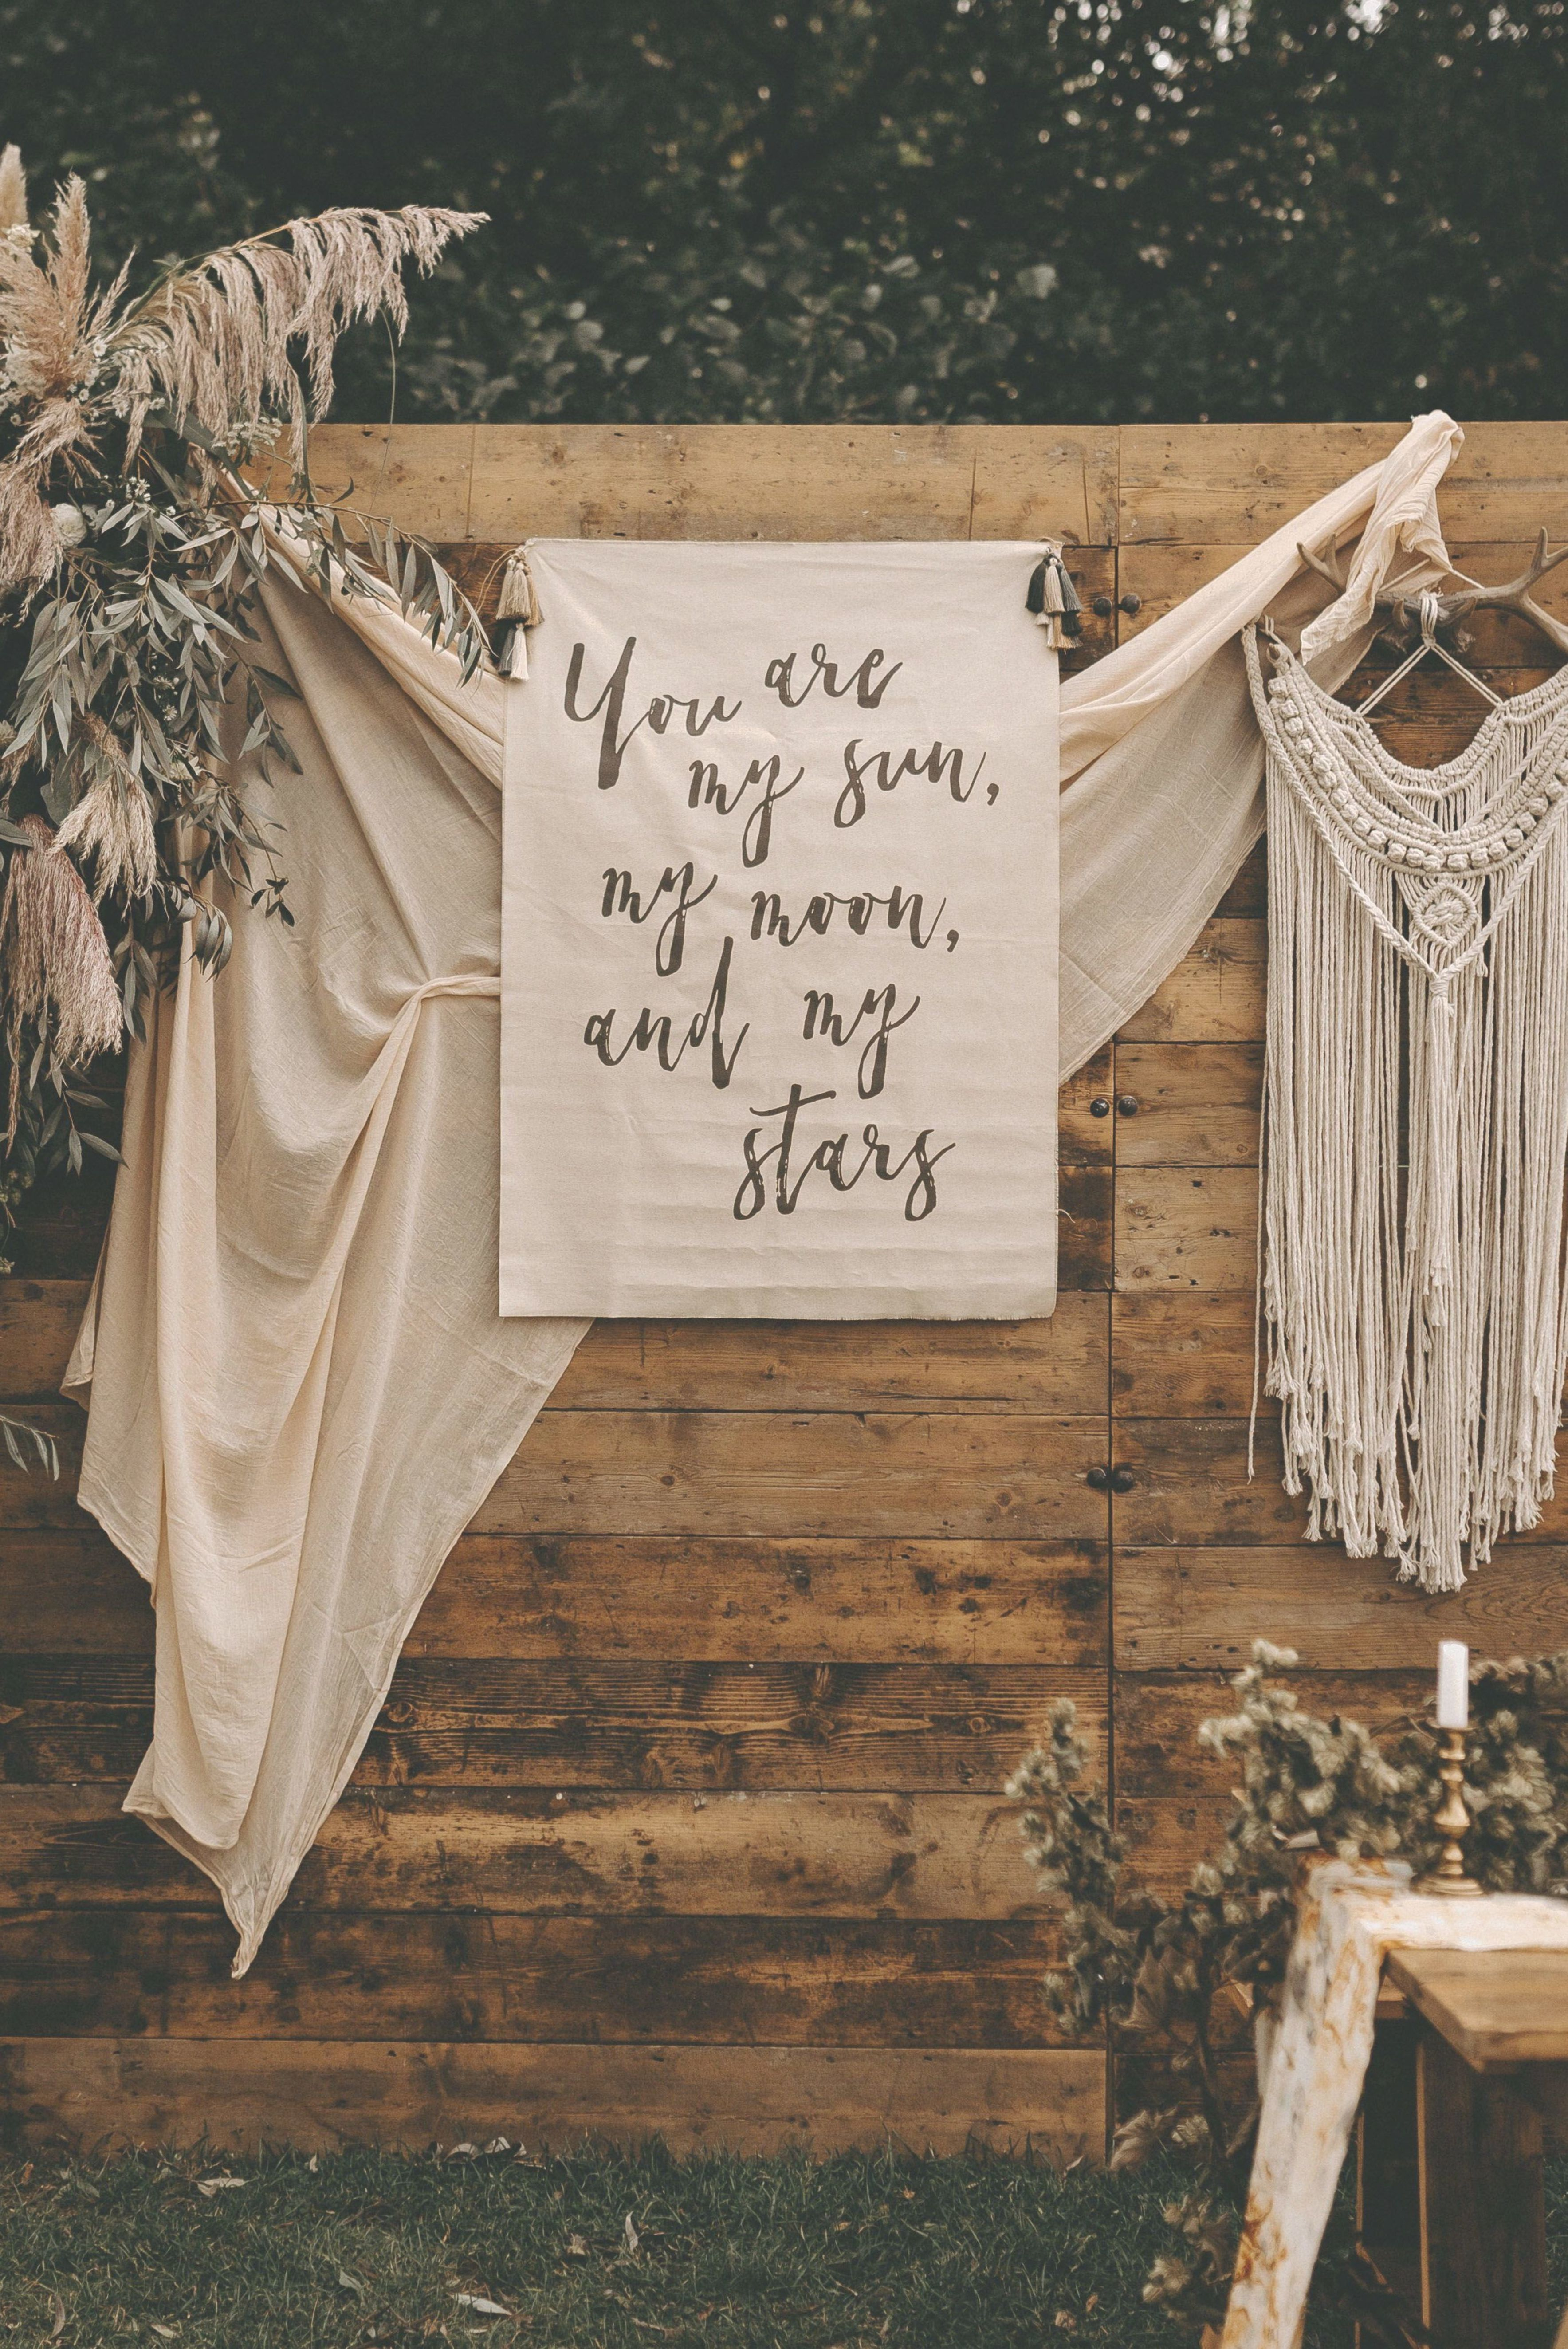 You are my sun my moon and my stars handwritten fabric wedding banner by Wonderland Invites Boho wedding styled shoot at Browning Bros Chalkney Water Meadows in Essex wit...